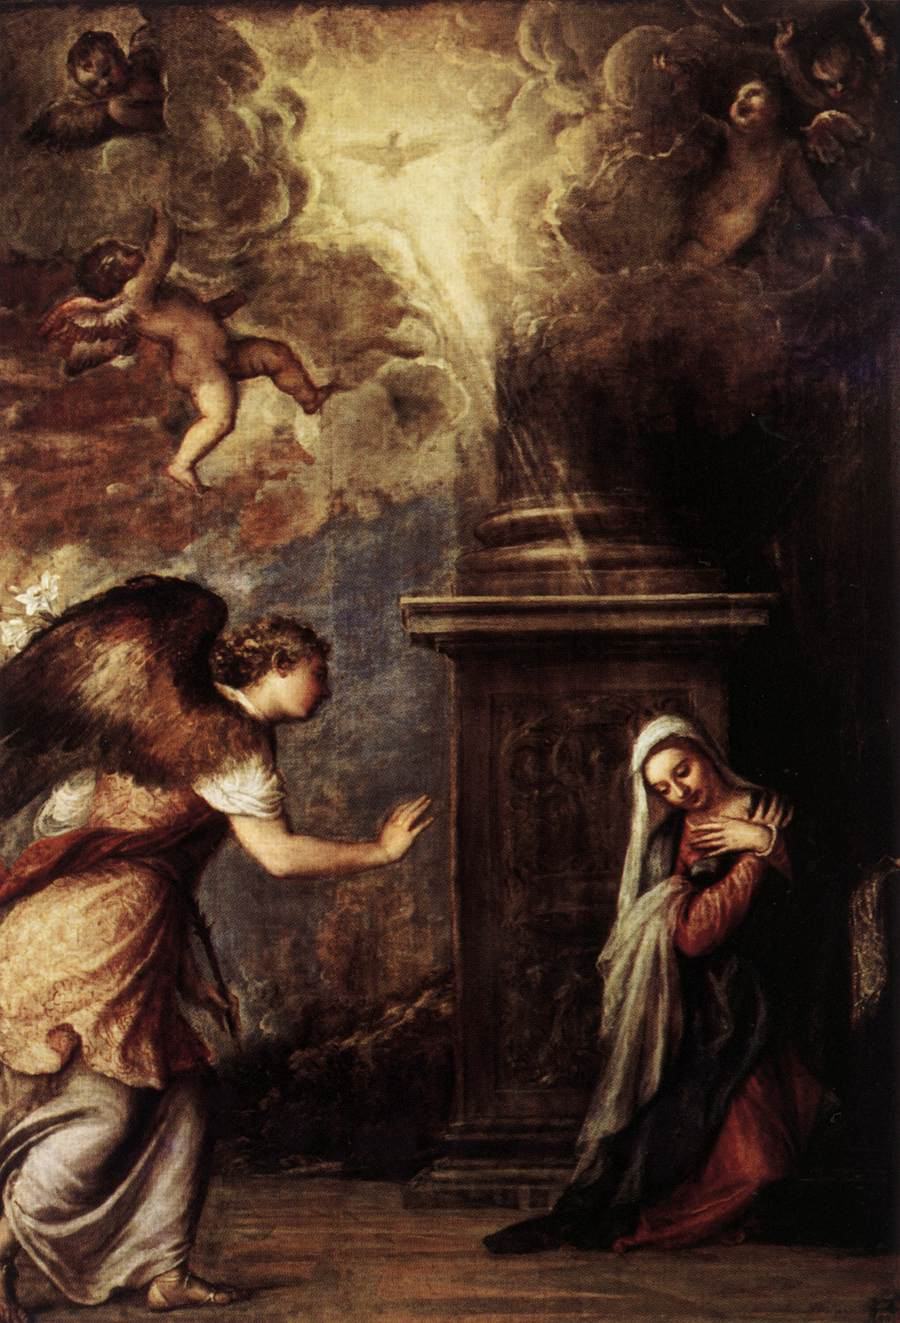 The Annunciation by Titian